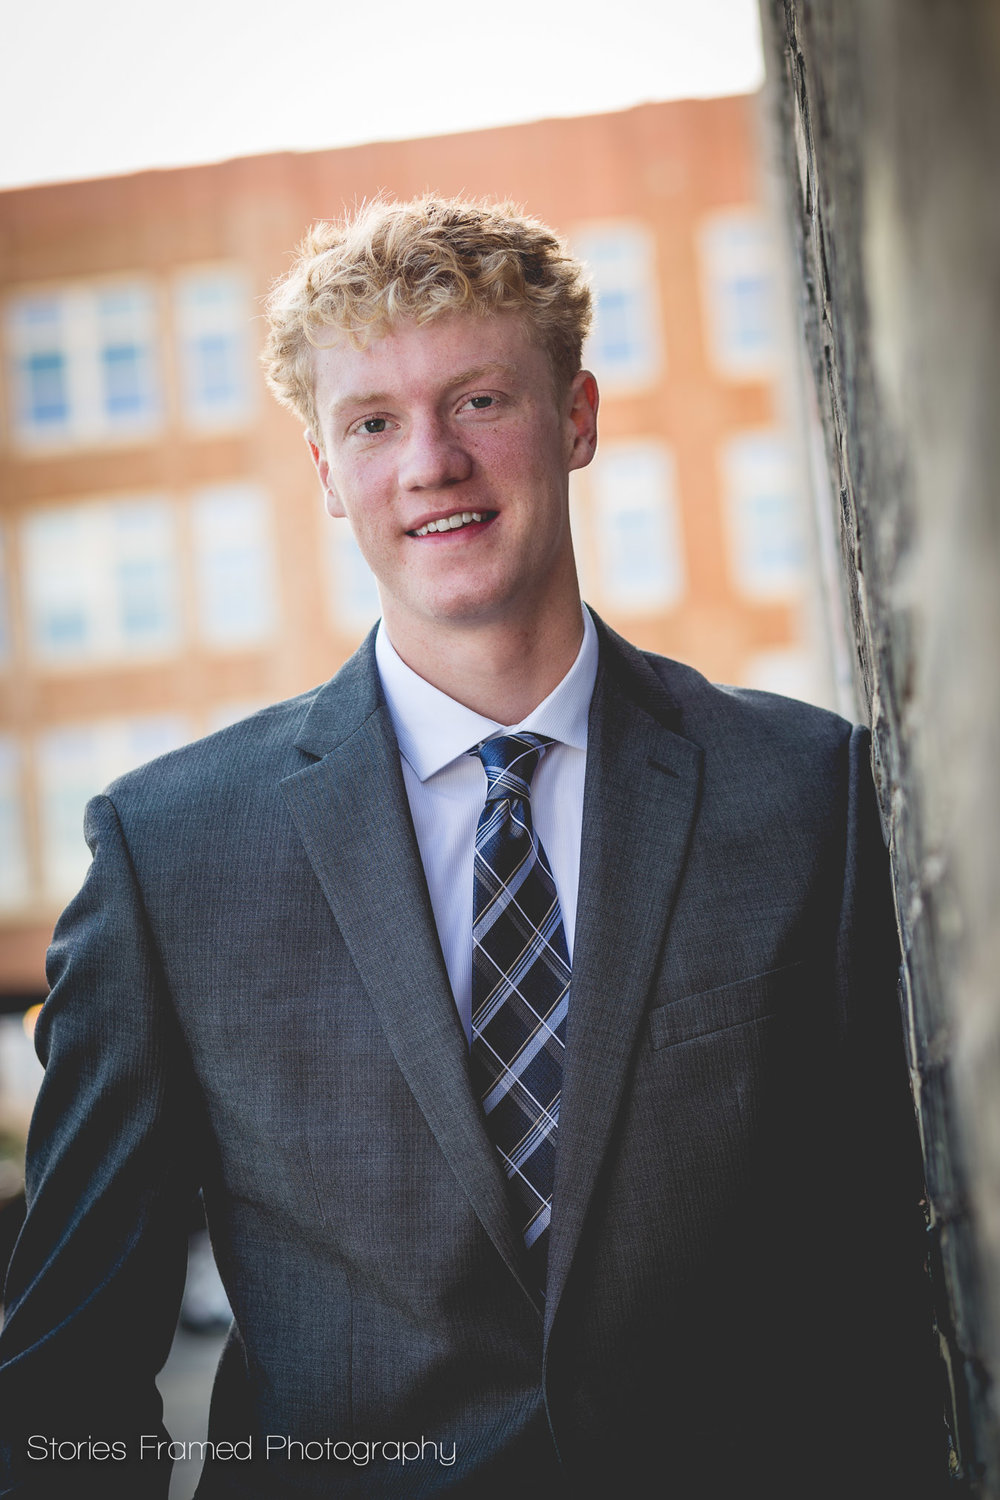 Joe-classof2018-wearing-tie-in-MKE